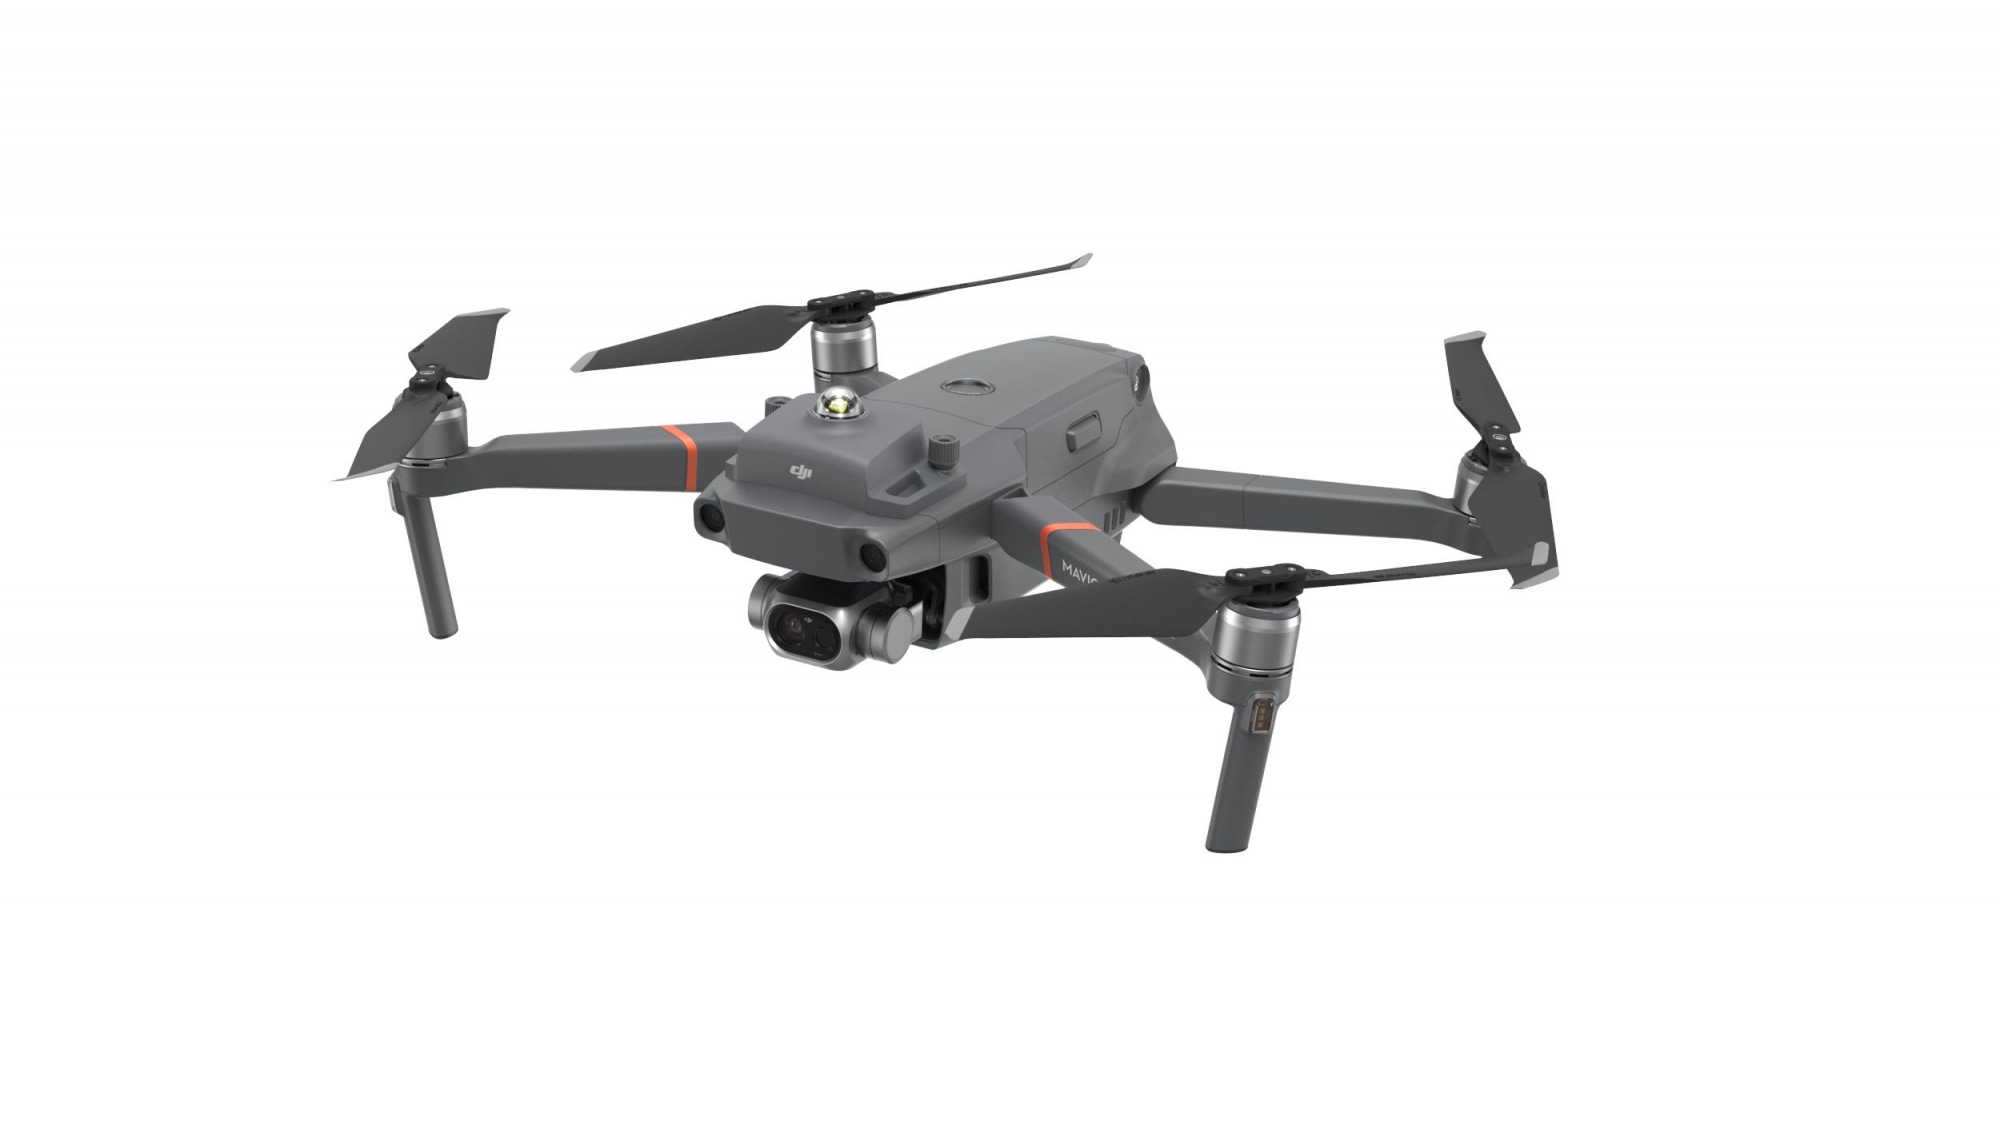 Парашют IDRsys для дрона DJI Mavic 2 Enterprise-1